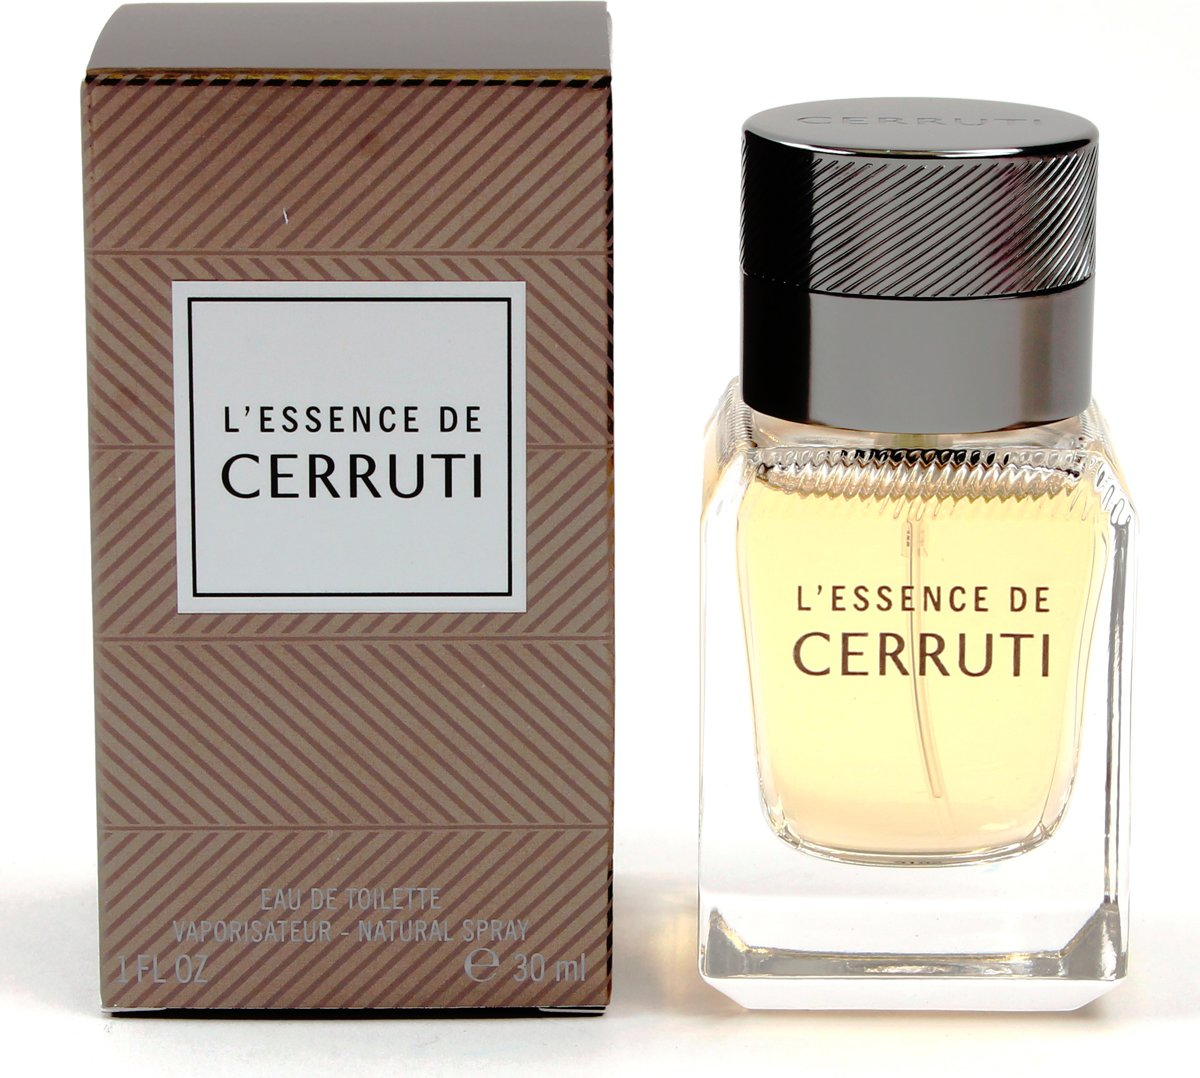 Cerruti L'Essence for Men - 30 ml - Eau de toilette